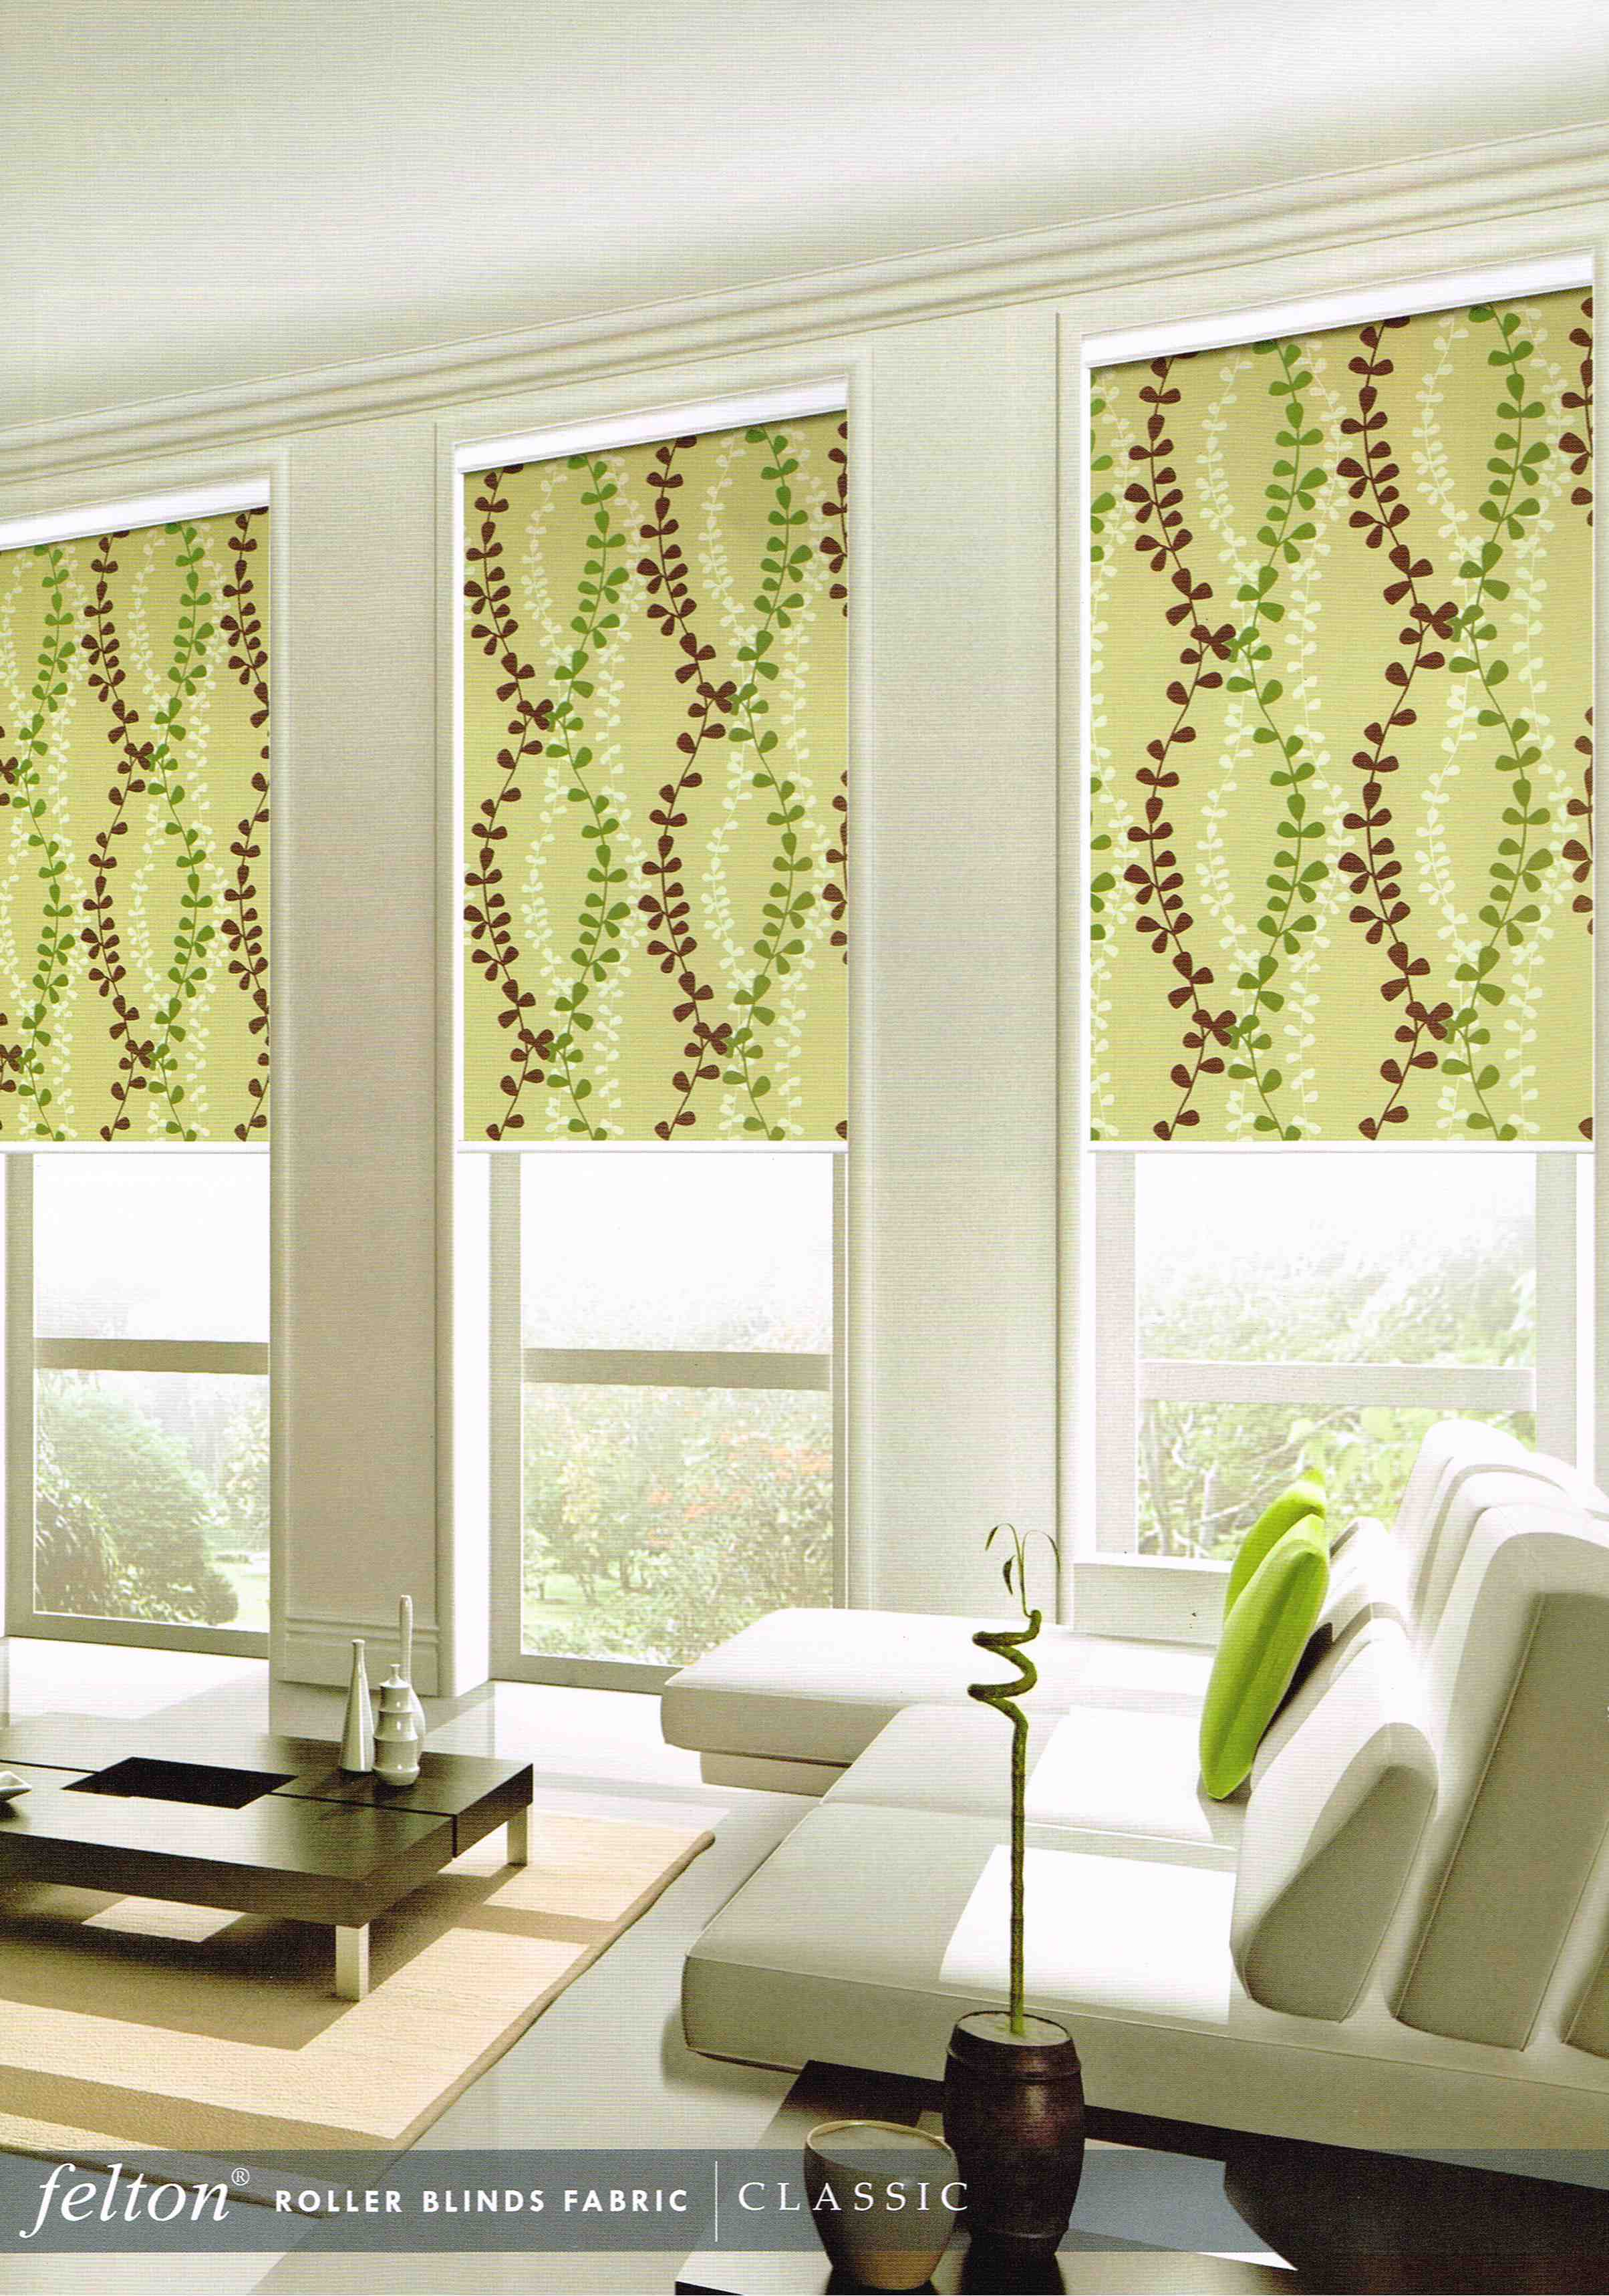 Roller Blinds Colourful Fabric Af07